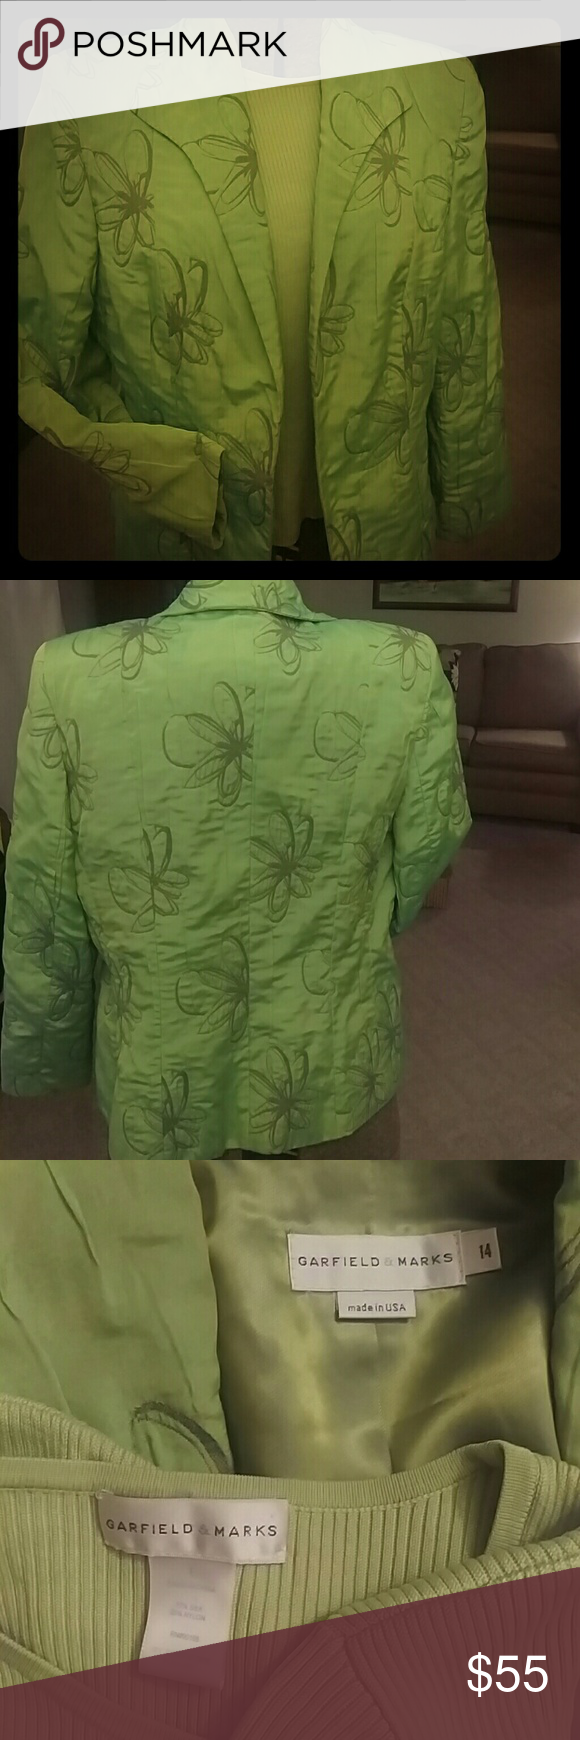 Beautiful jacket and matching shell in apple green Richly quilted and embroidered jacket is fully lined. Worn a few times. No rips tears or stains. Size 14, 40% polyester 26% cotton and 26% polyamide, jacket has a light I trade sent sheen. Matching t-shirt shell is size large 75% silk 25% nylon. Both from Garfield and marks. Both are generously sized. Garfield & Marks Jackets & Coats Blazers